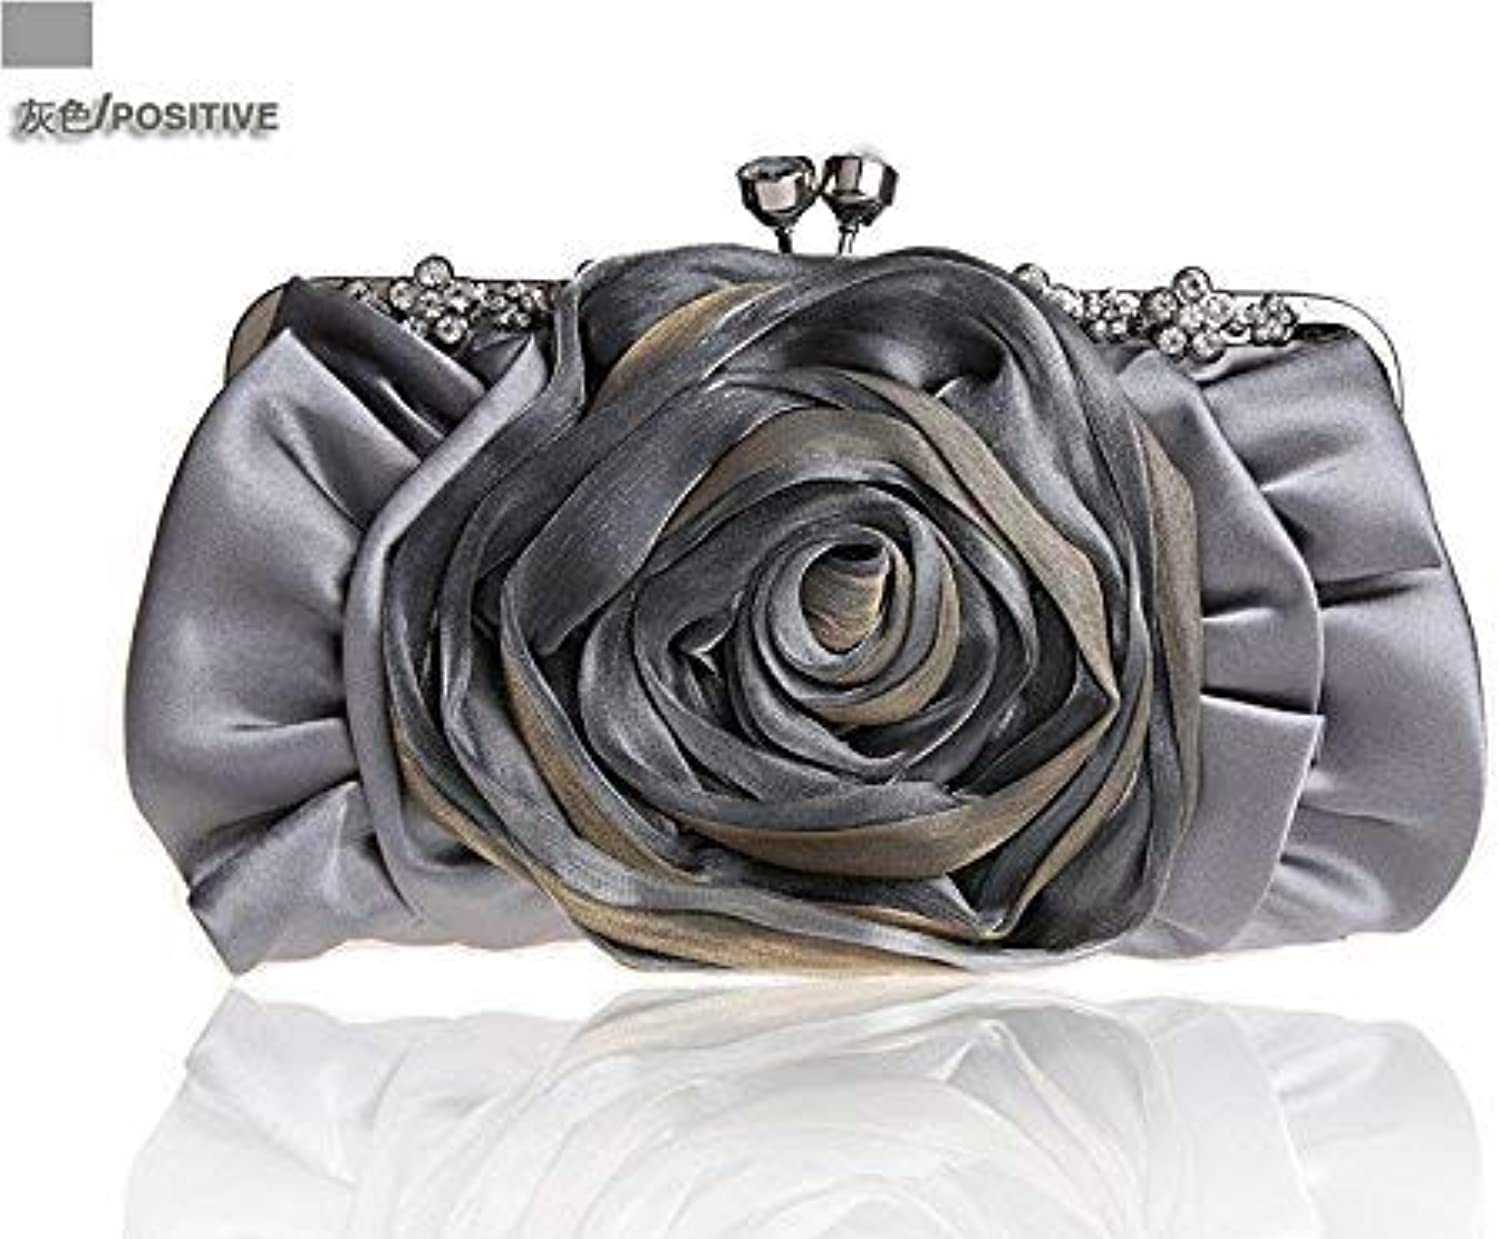 Ladies Handbag The Package of The Packagecolor Flowers Package Dinner Package Bridal Packages Wedding Packages Silk Women's Handbags, CrossPartyStyle SmallPackage (color   Grey)